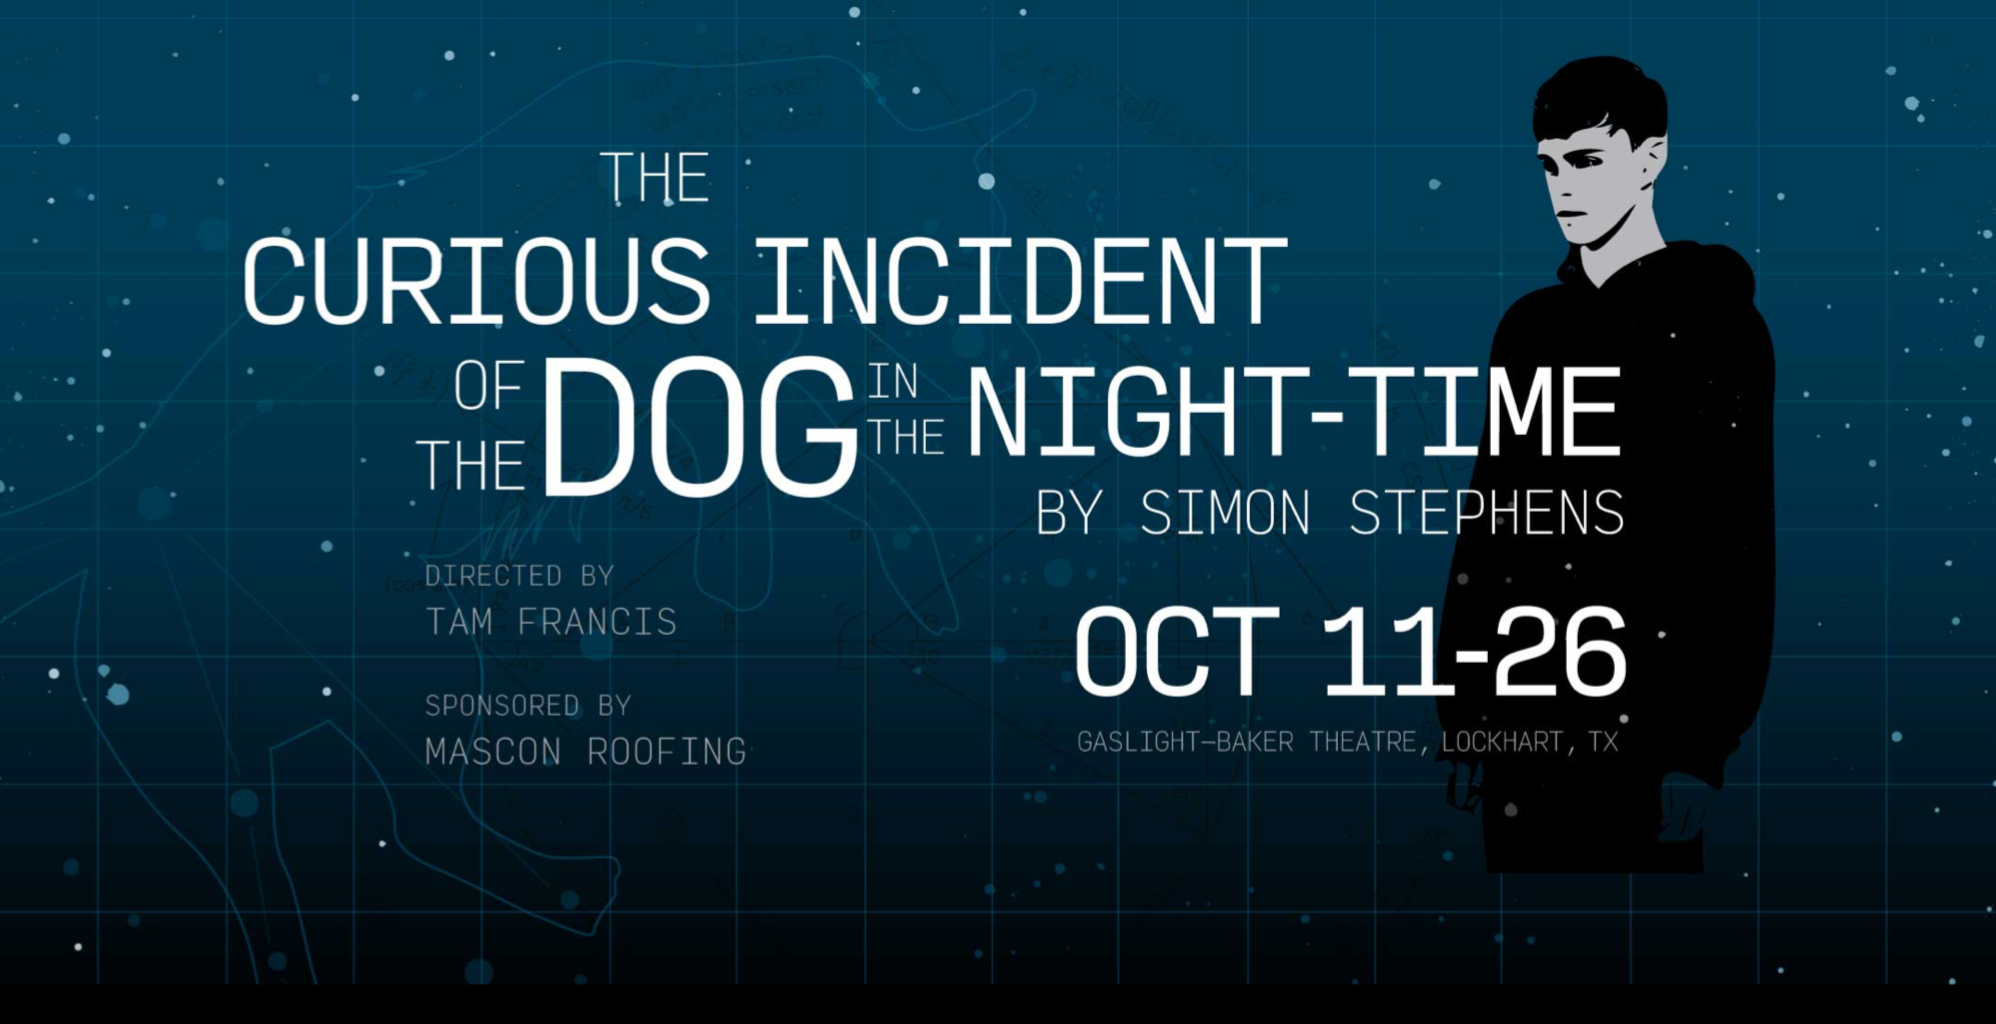 The Curious Incident of the Dog in the Night-Time by Gaslight Baker Theatre